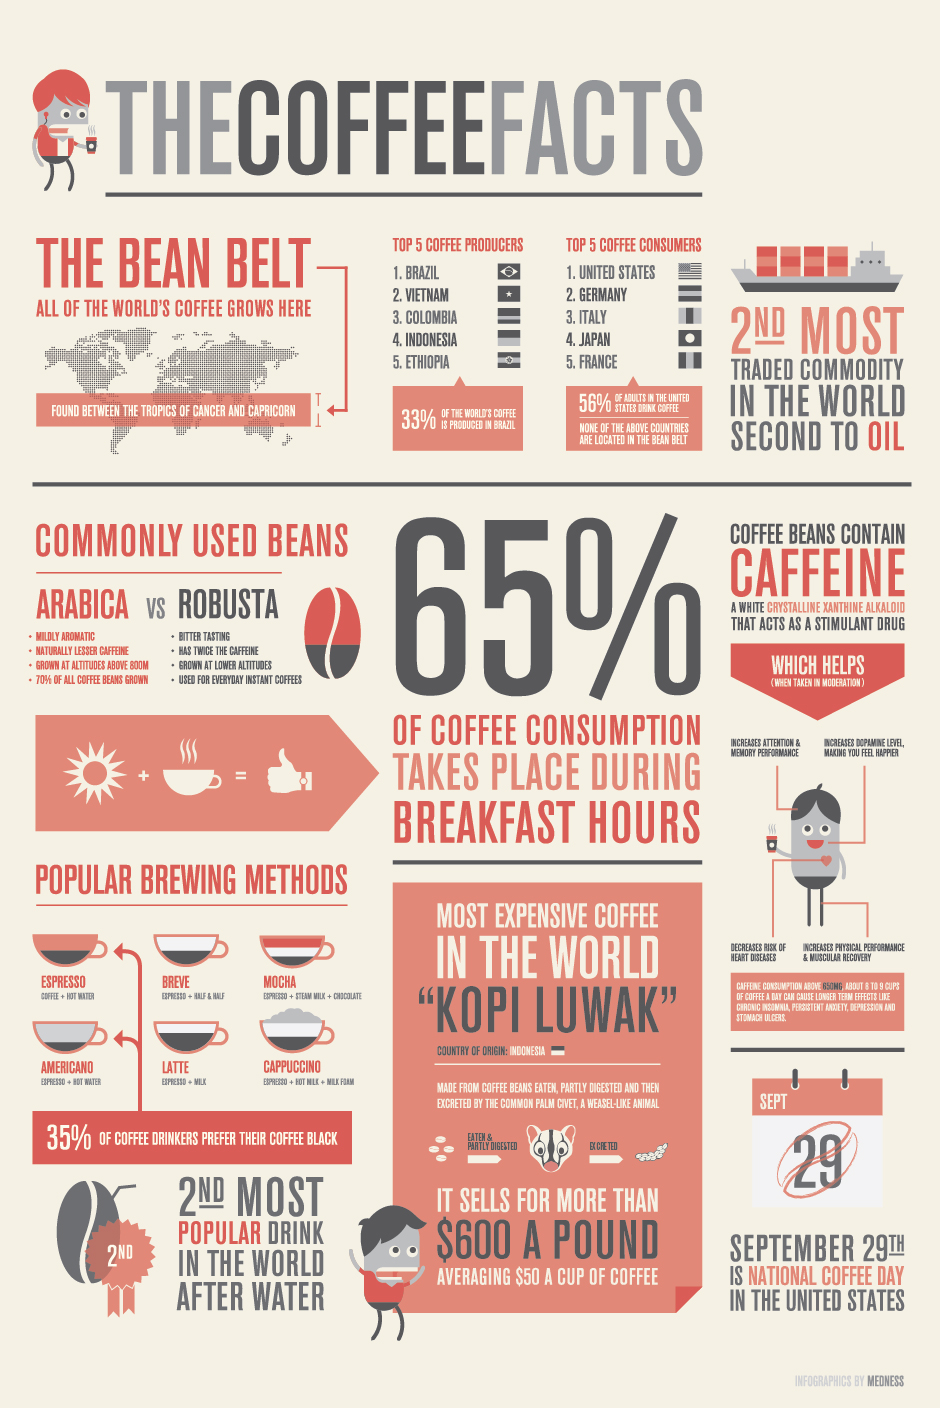 the-coffee-facts_50290dc9995f9